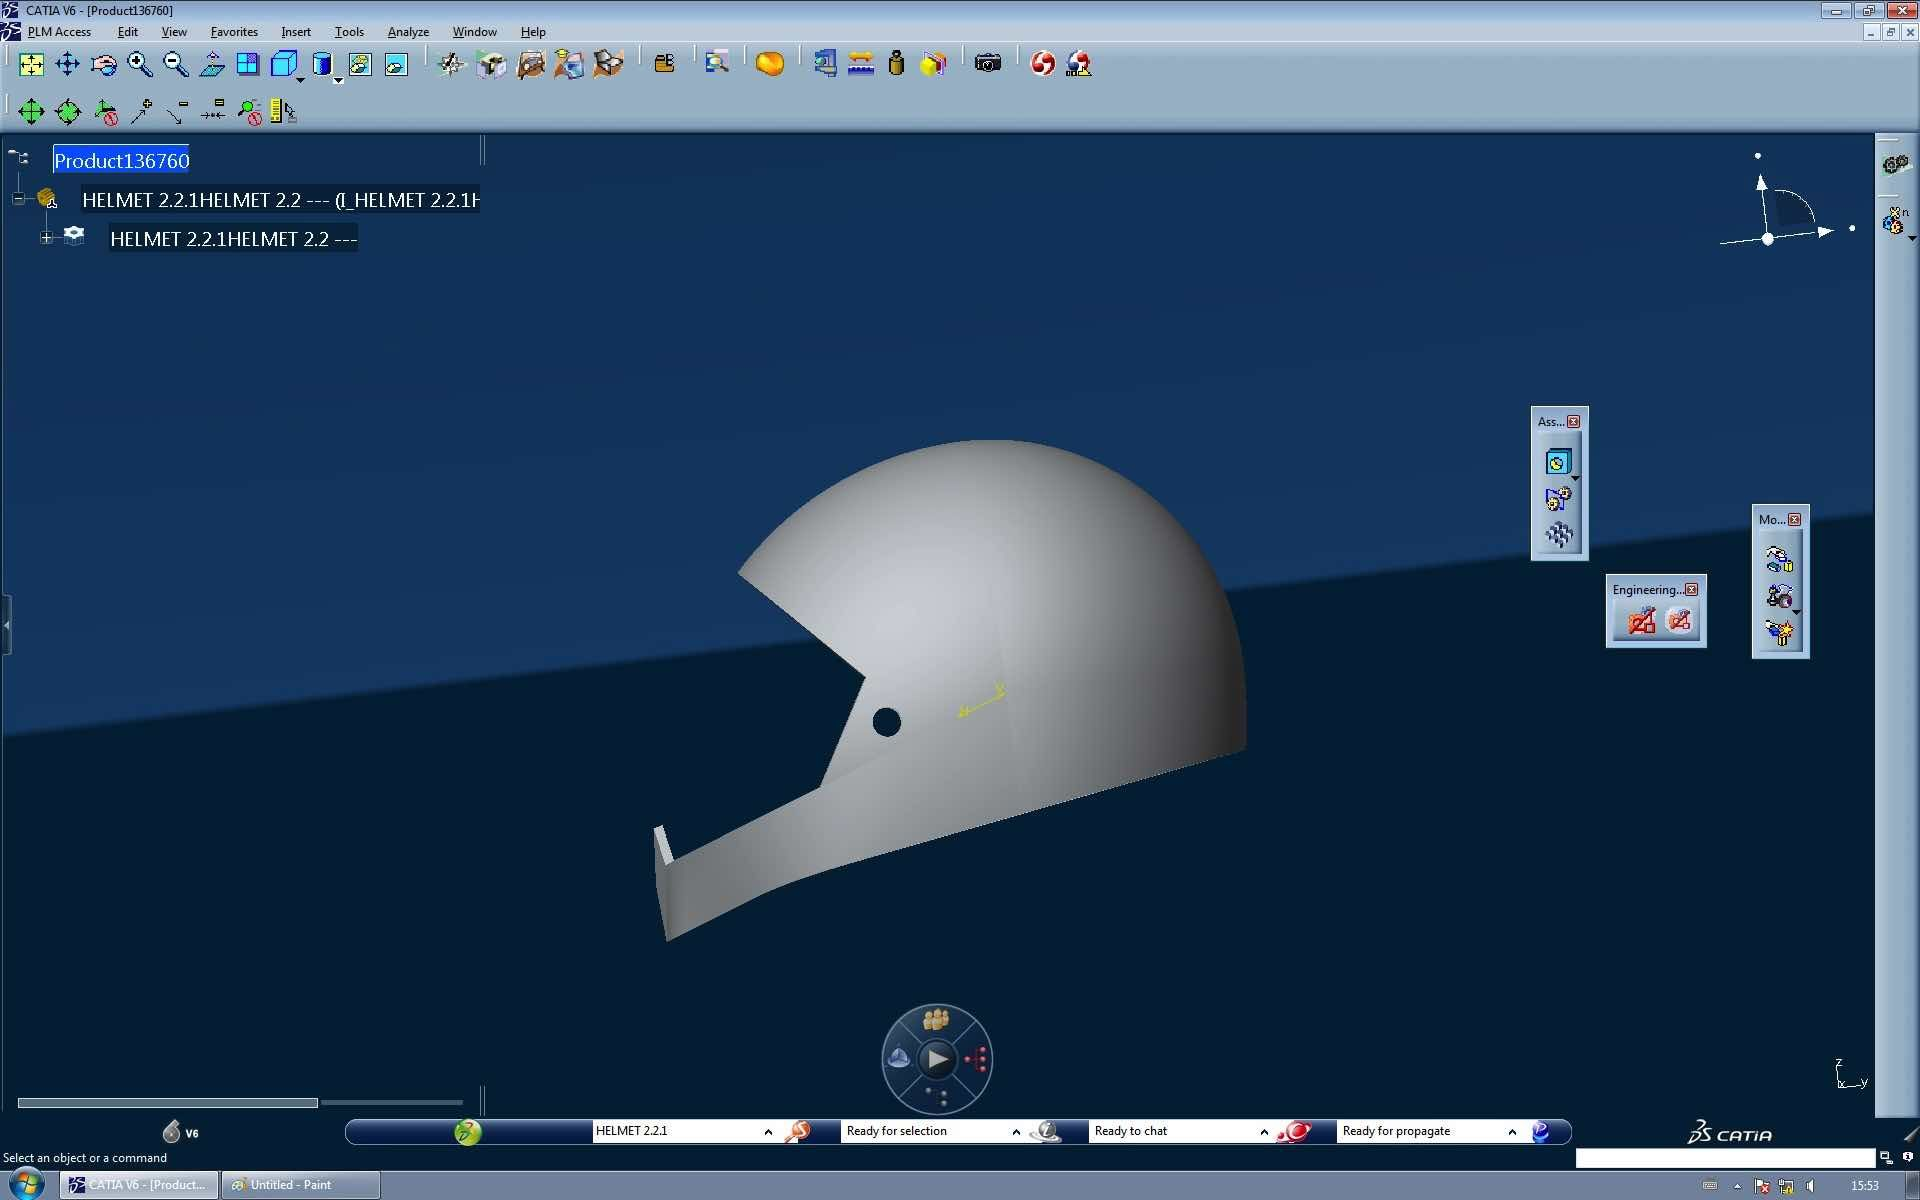 catia v6 software free download with crack